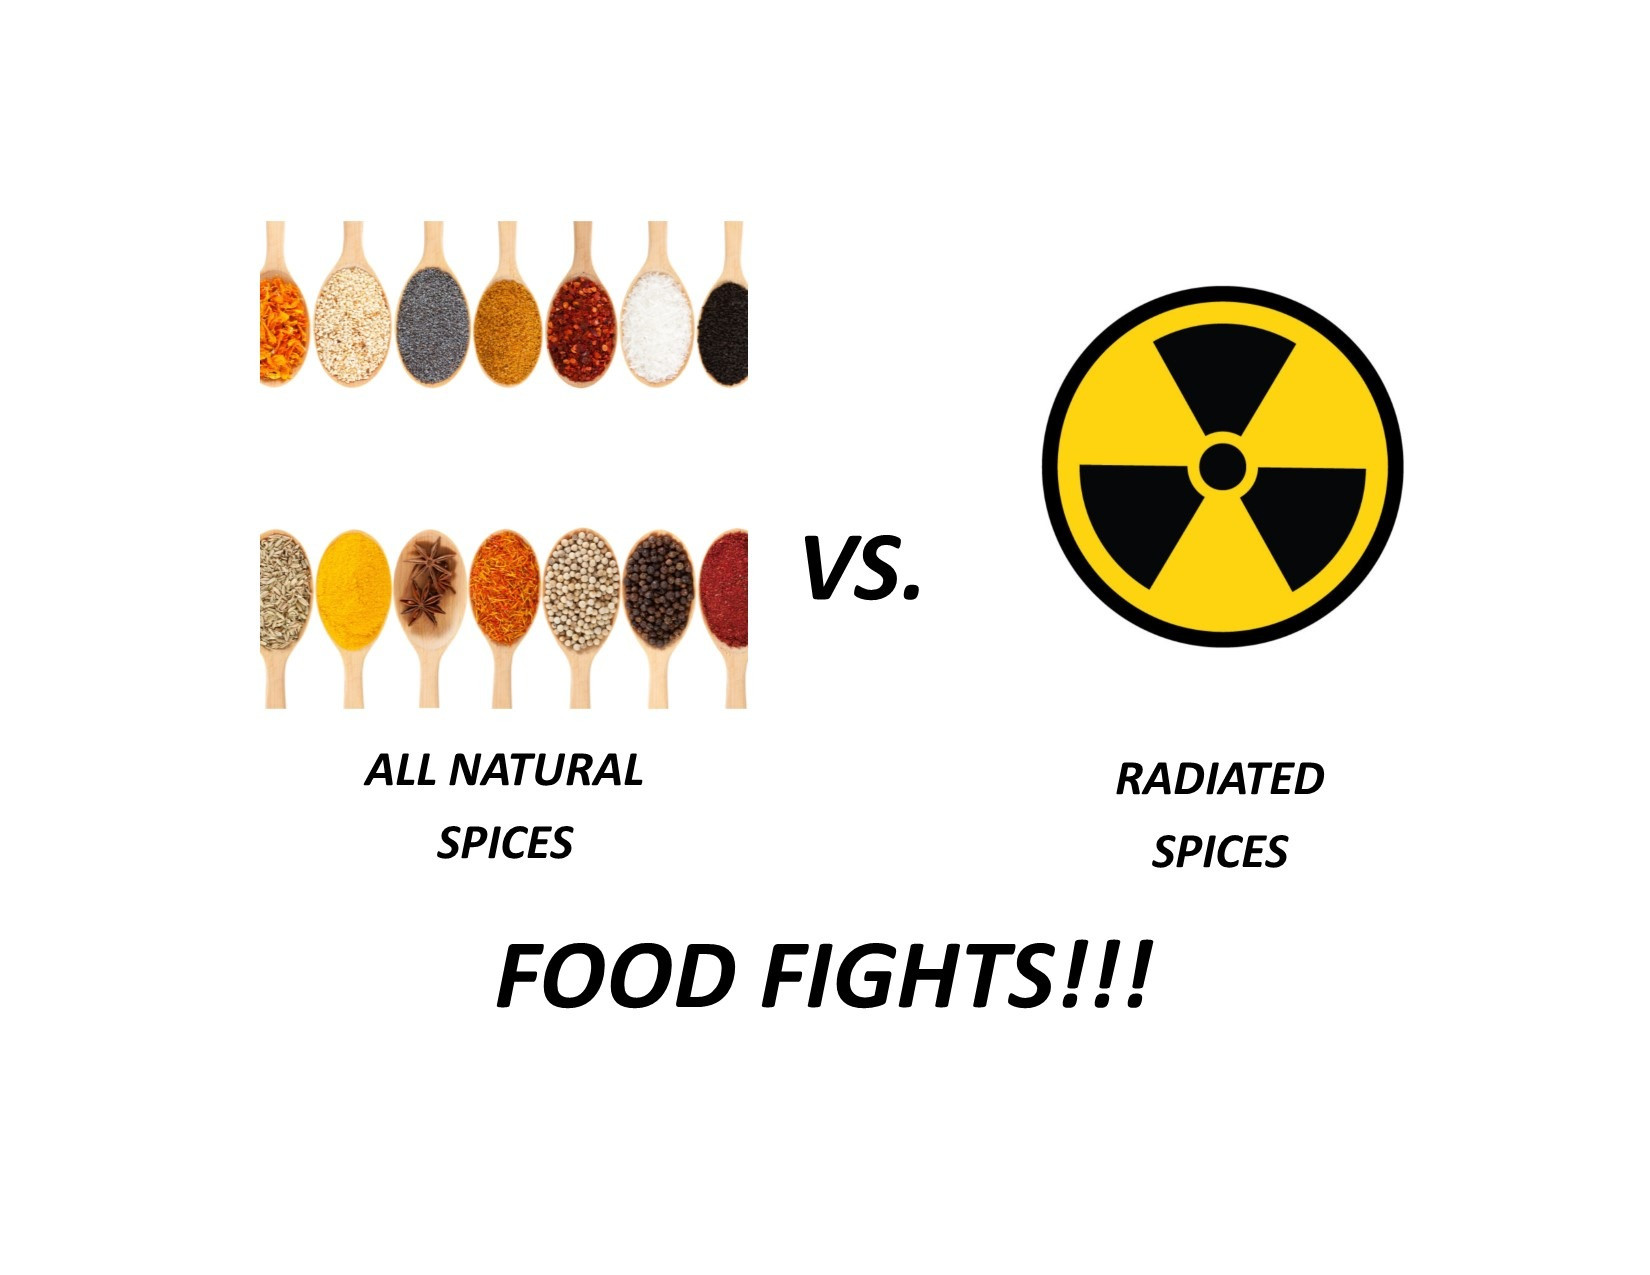 Radiated vs Non Radiated Spices